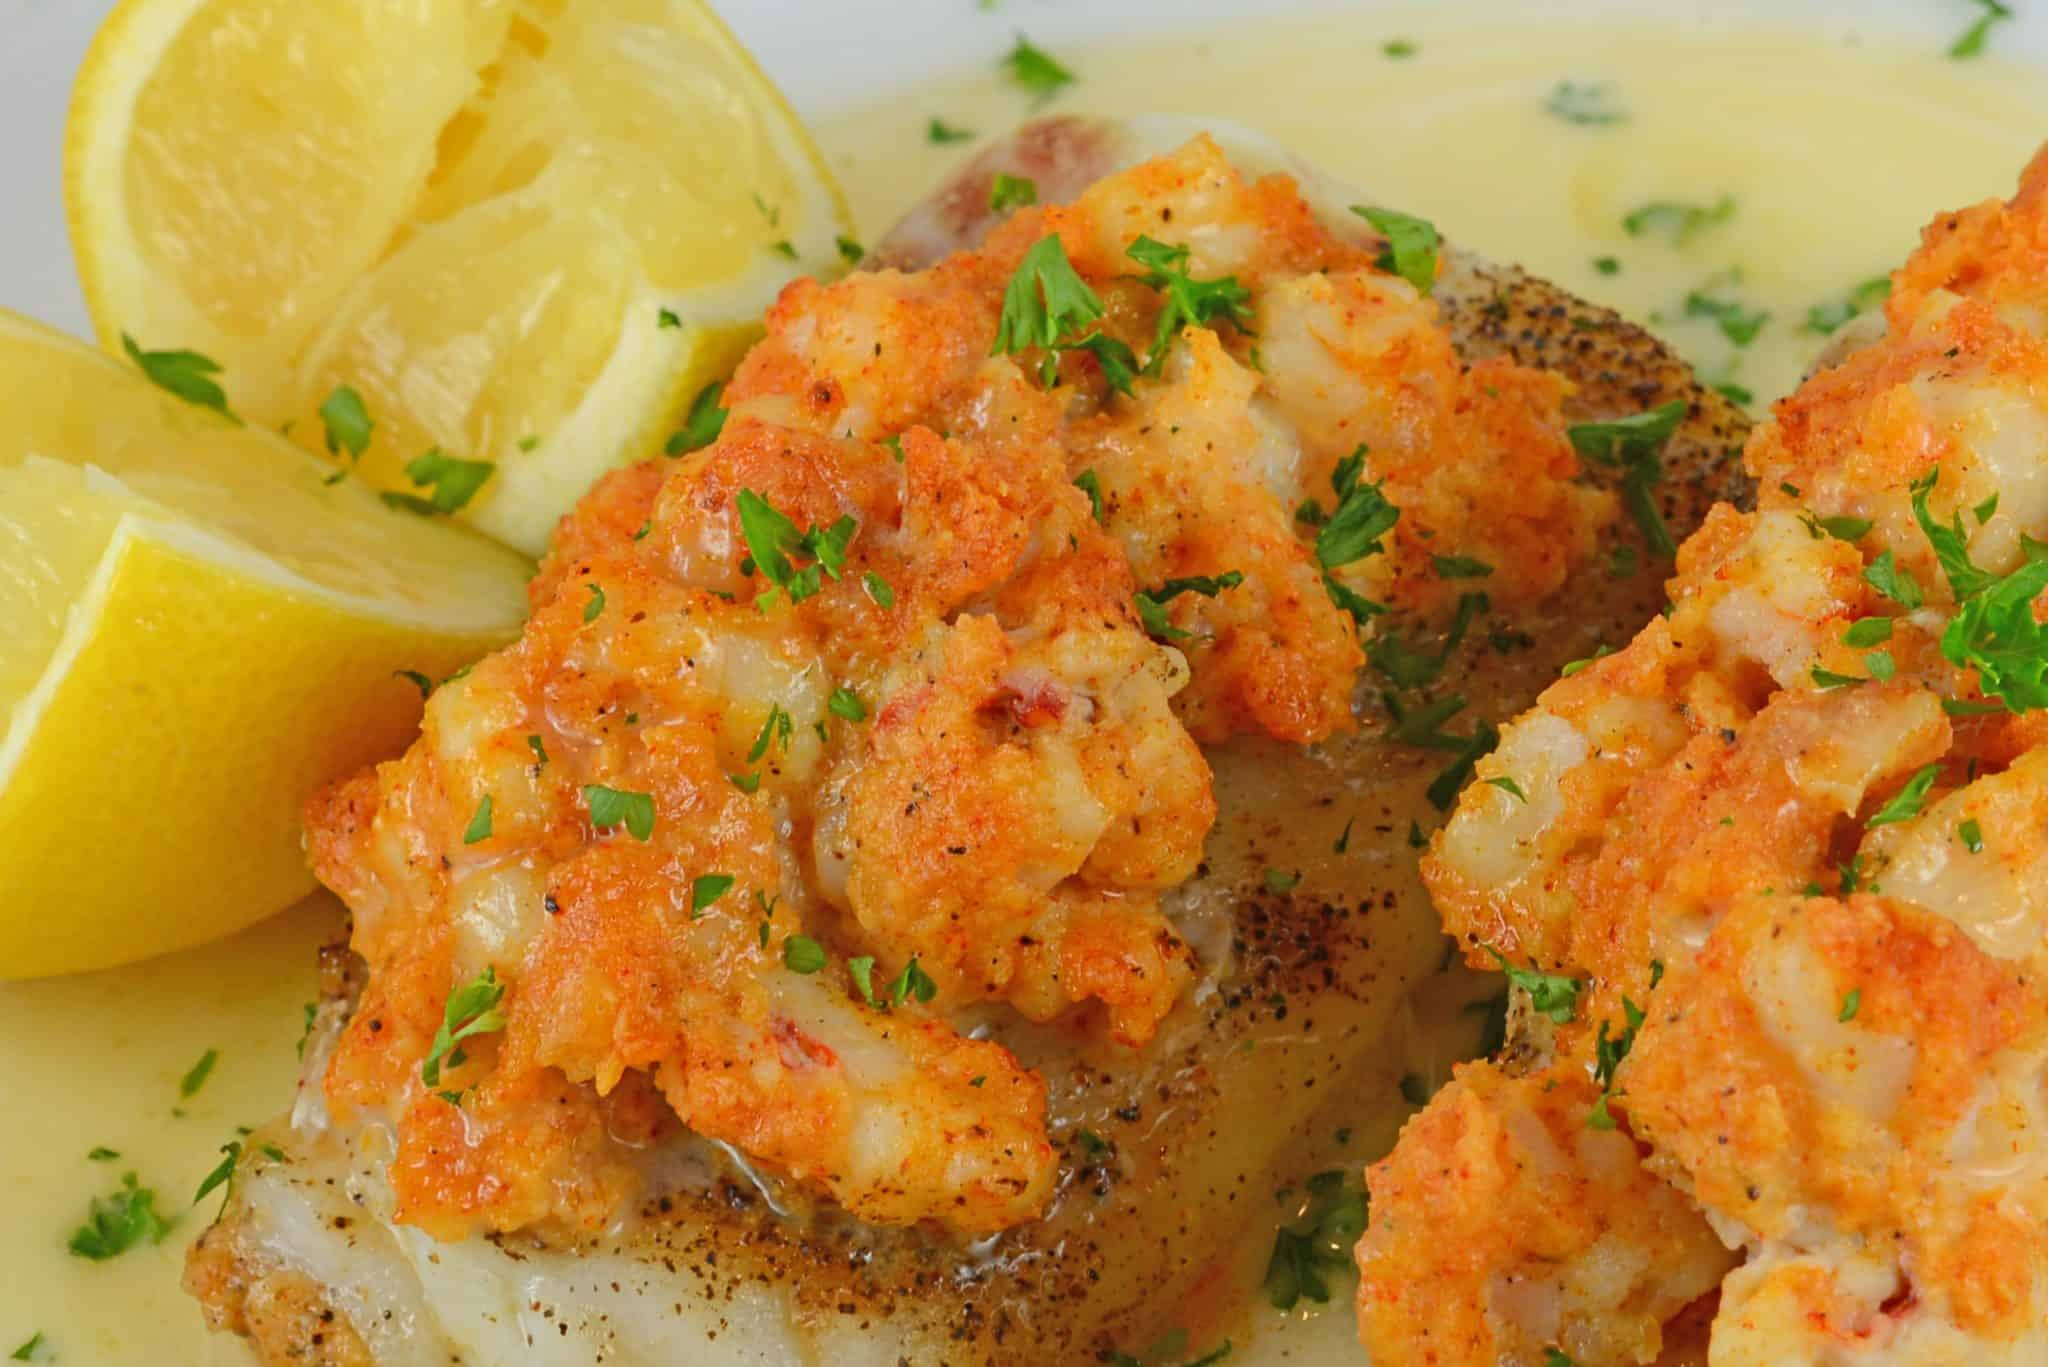 Make Lobster Stuffed Cod for your next special occasion. Buttery cod topped with lump lobster meat and buerre blanc sauce.